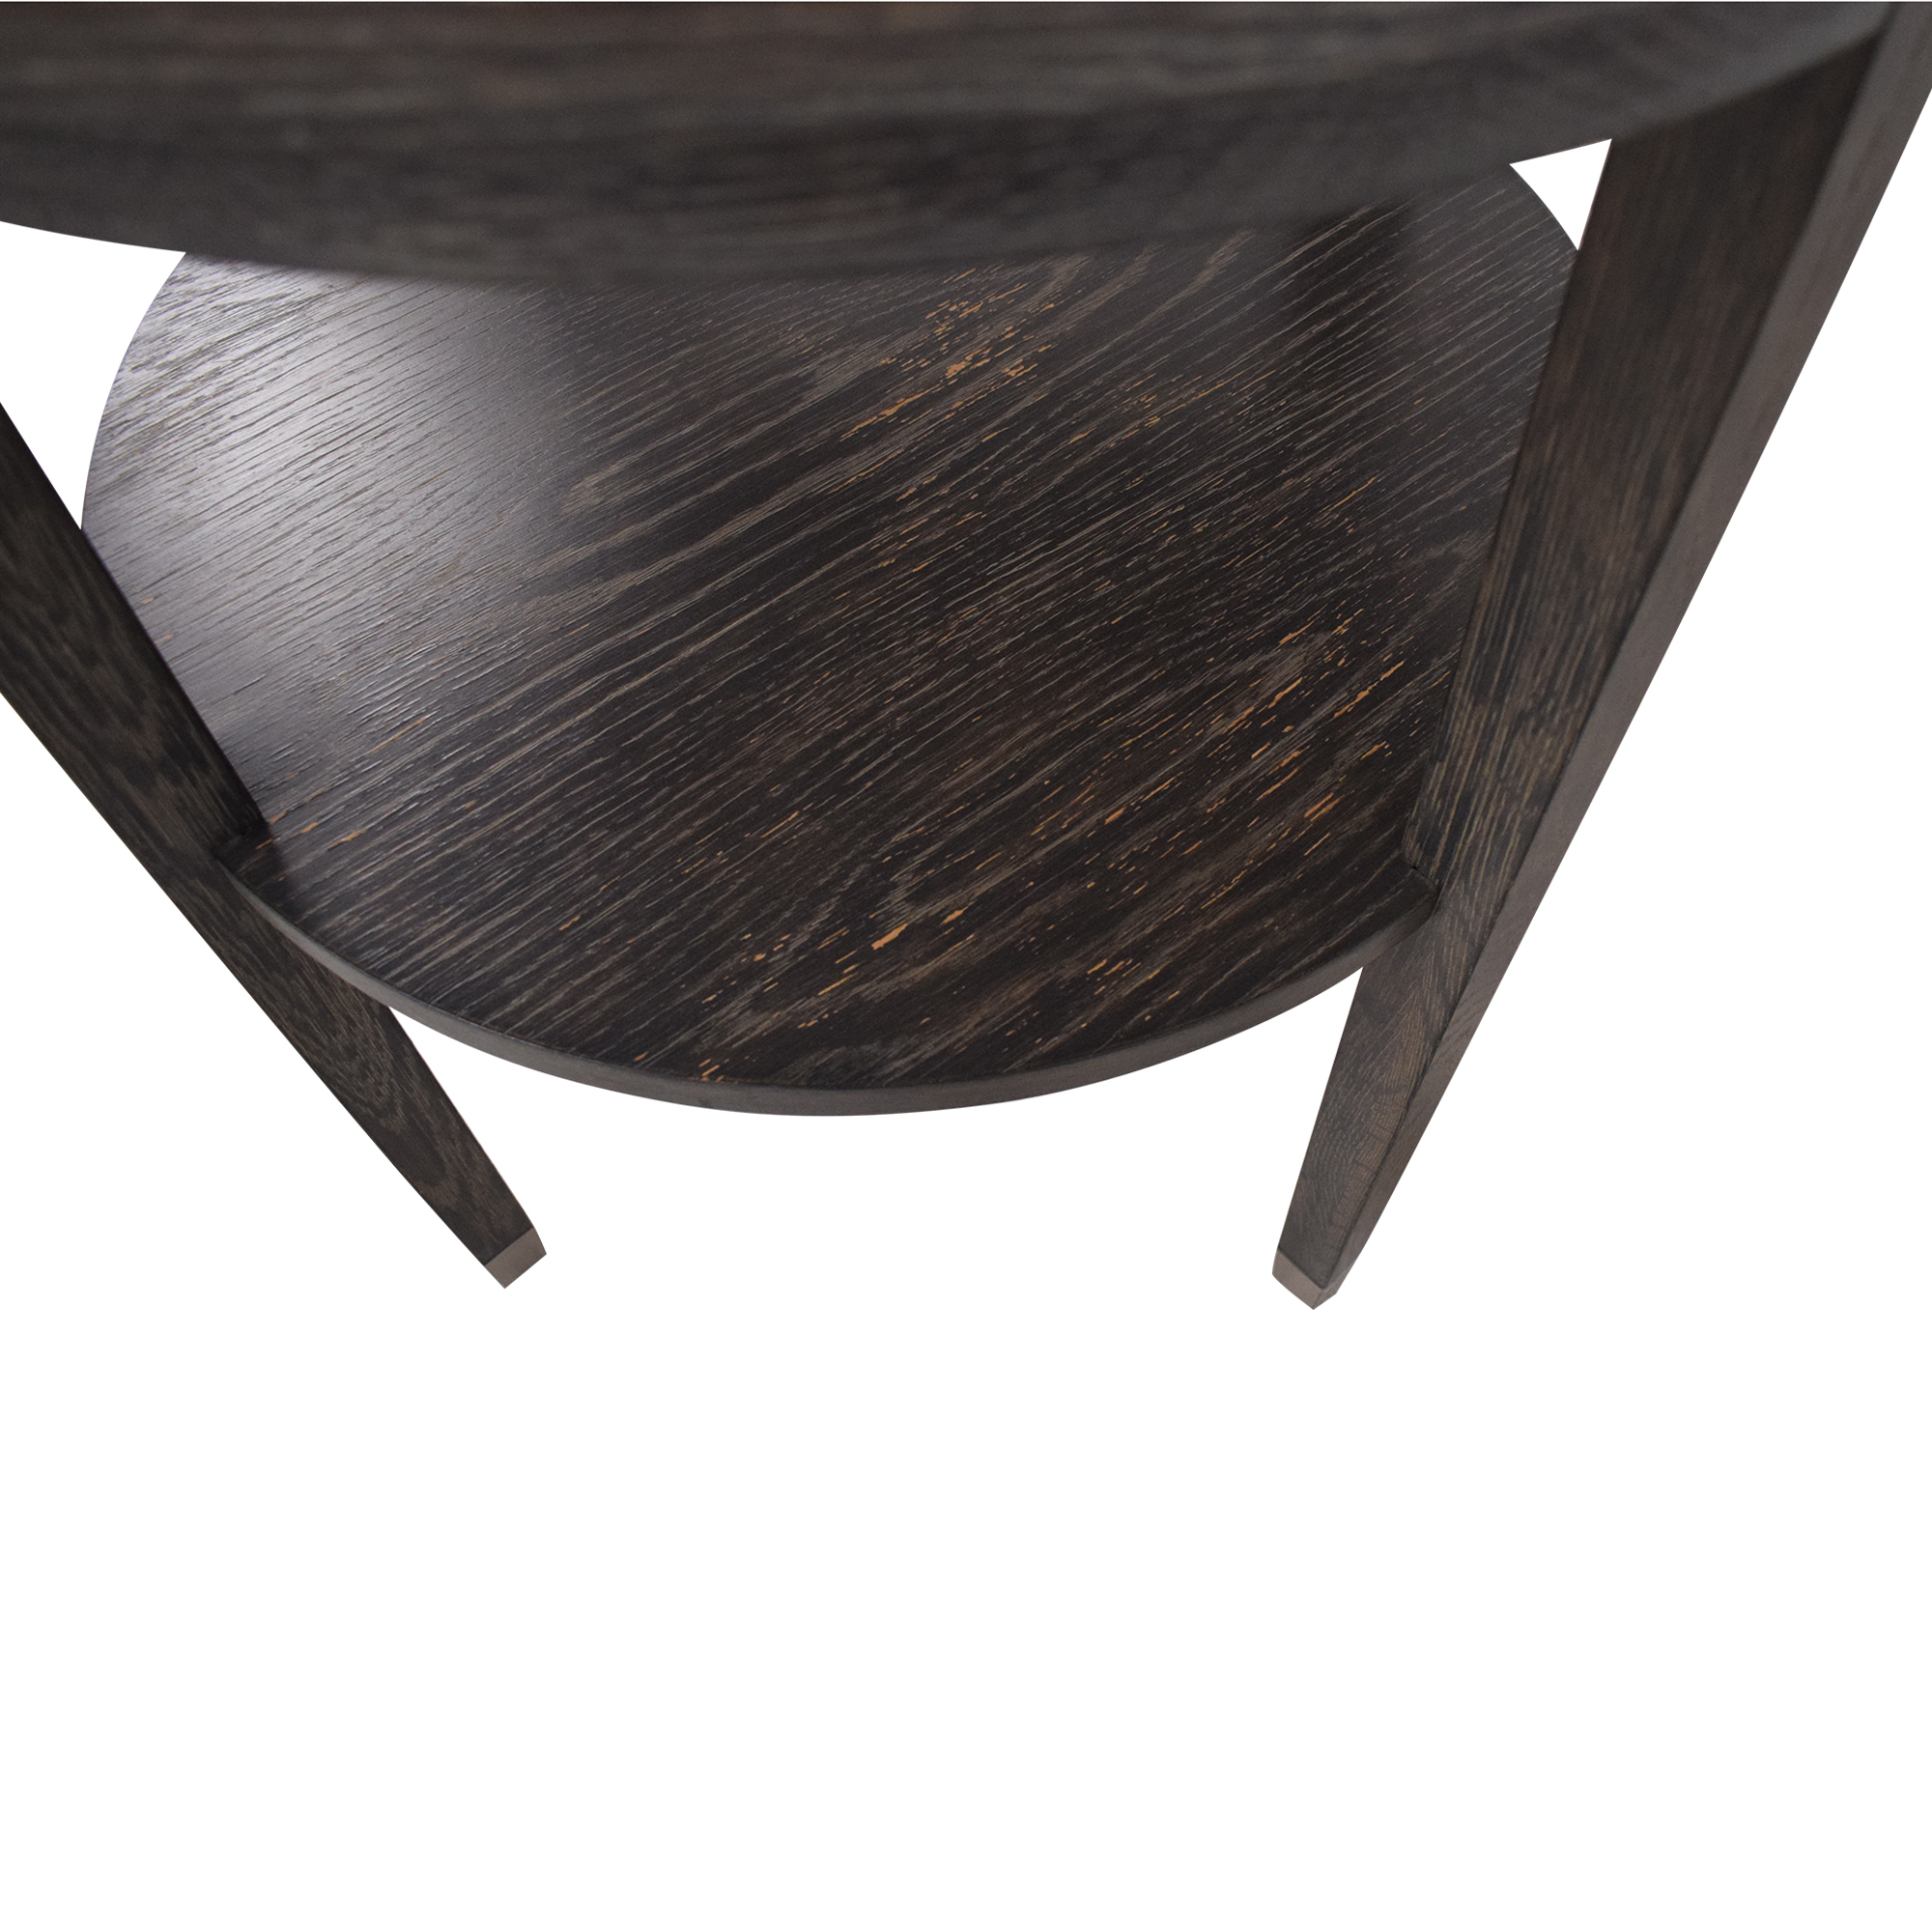 Arteriors Arteriors Home Gentry Side Table coupon